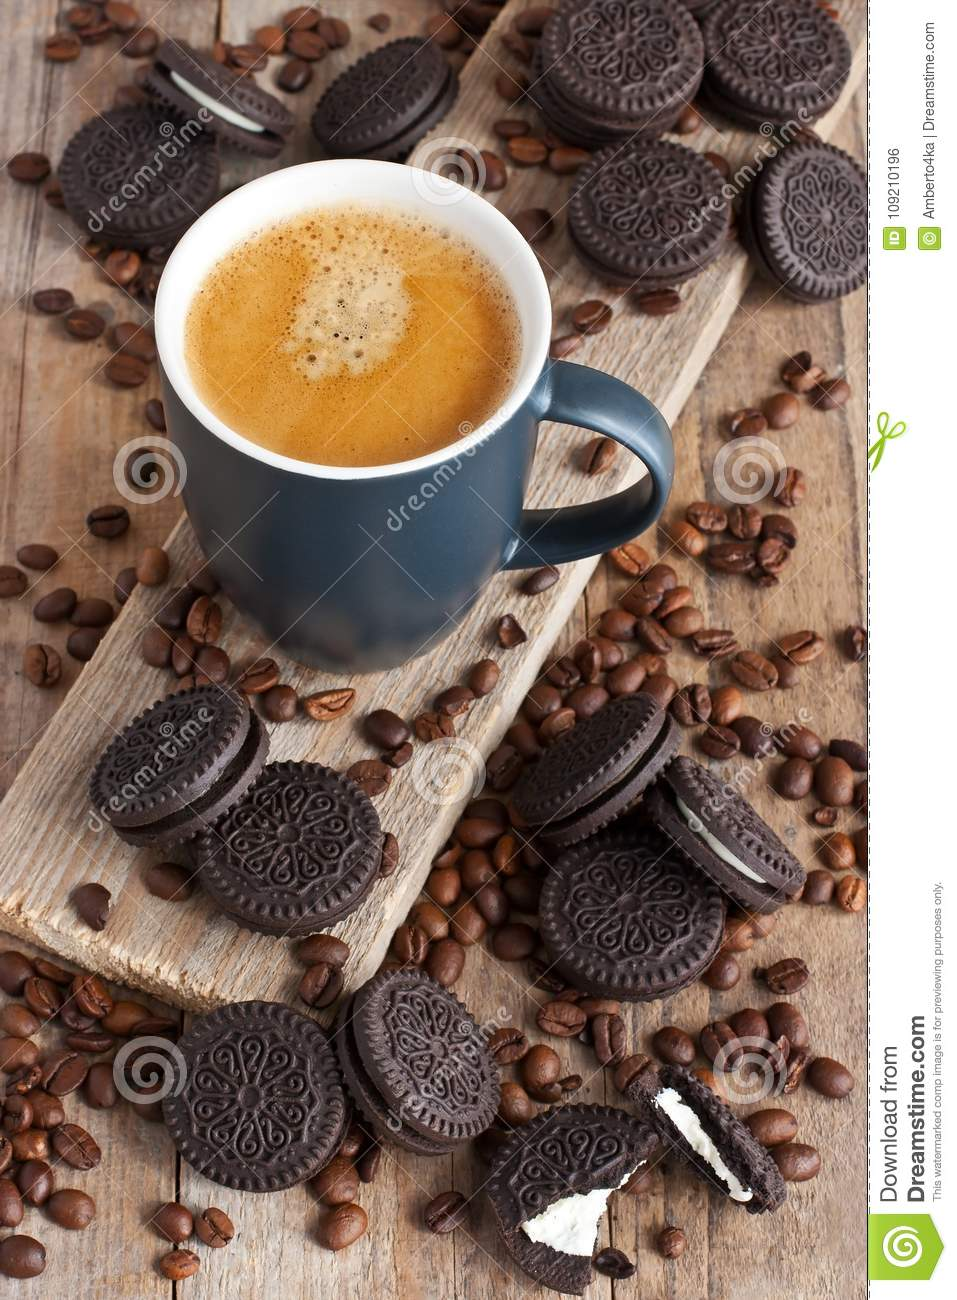 Breakfast Coffee Mug With Tasty Cookies Stock Photo Image Of Arabica Delicious 109210196